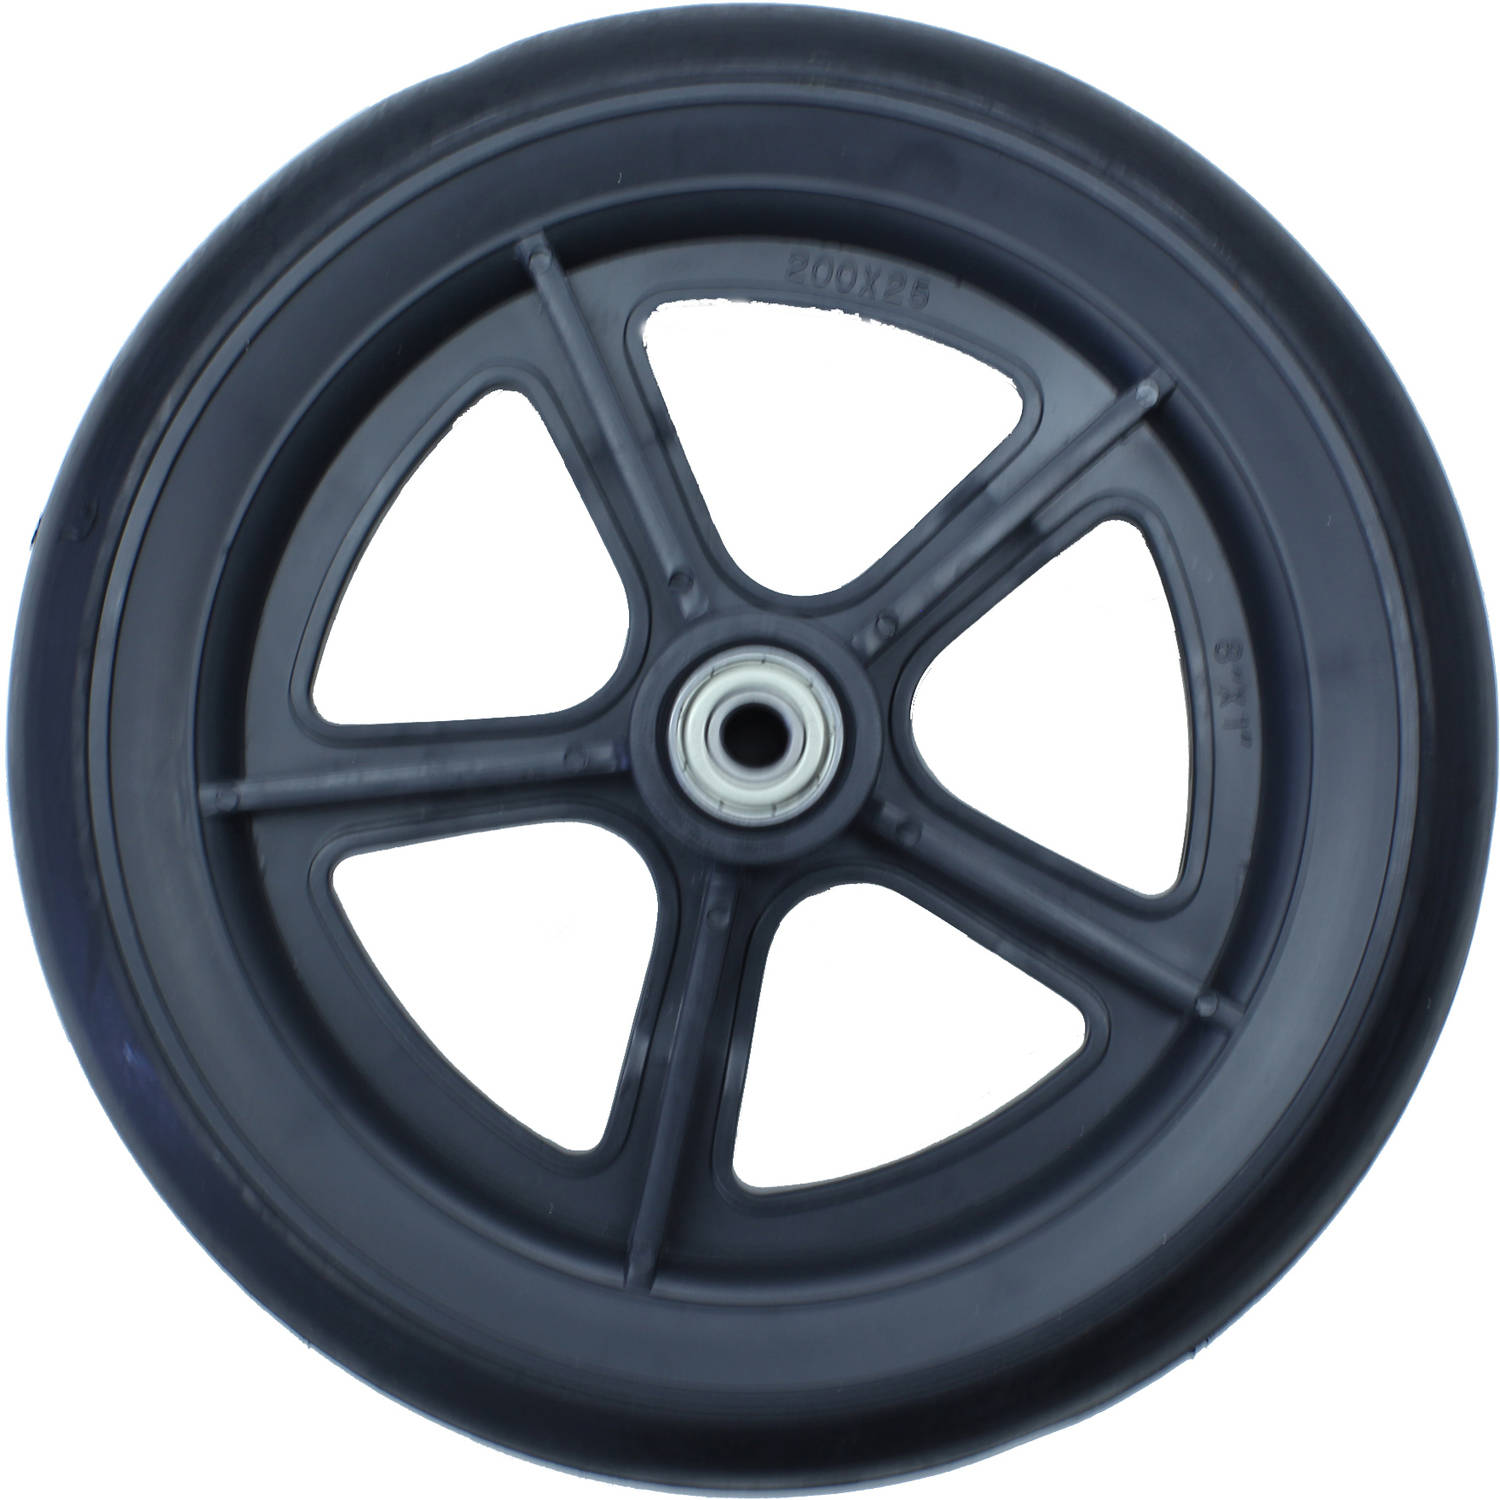 "Karman 8"" Wheelchair Casters, Solid Black with 5/16 Bearing"